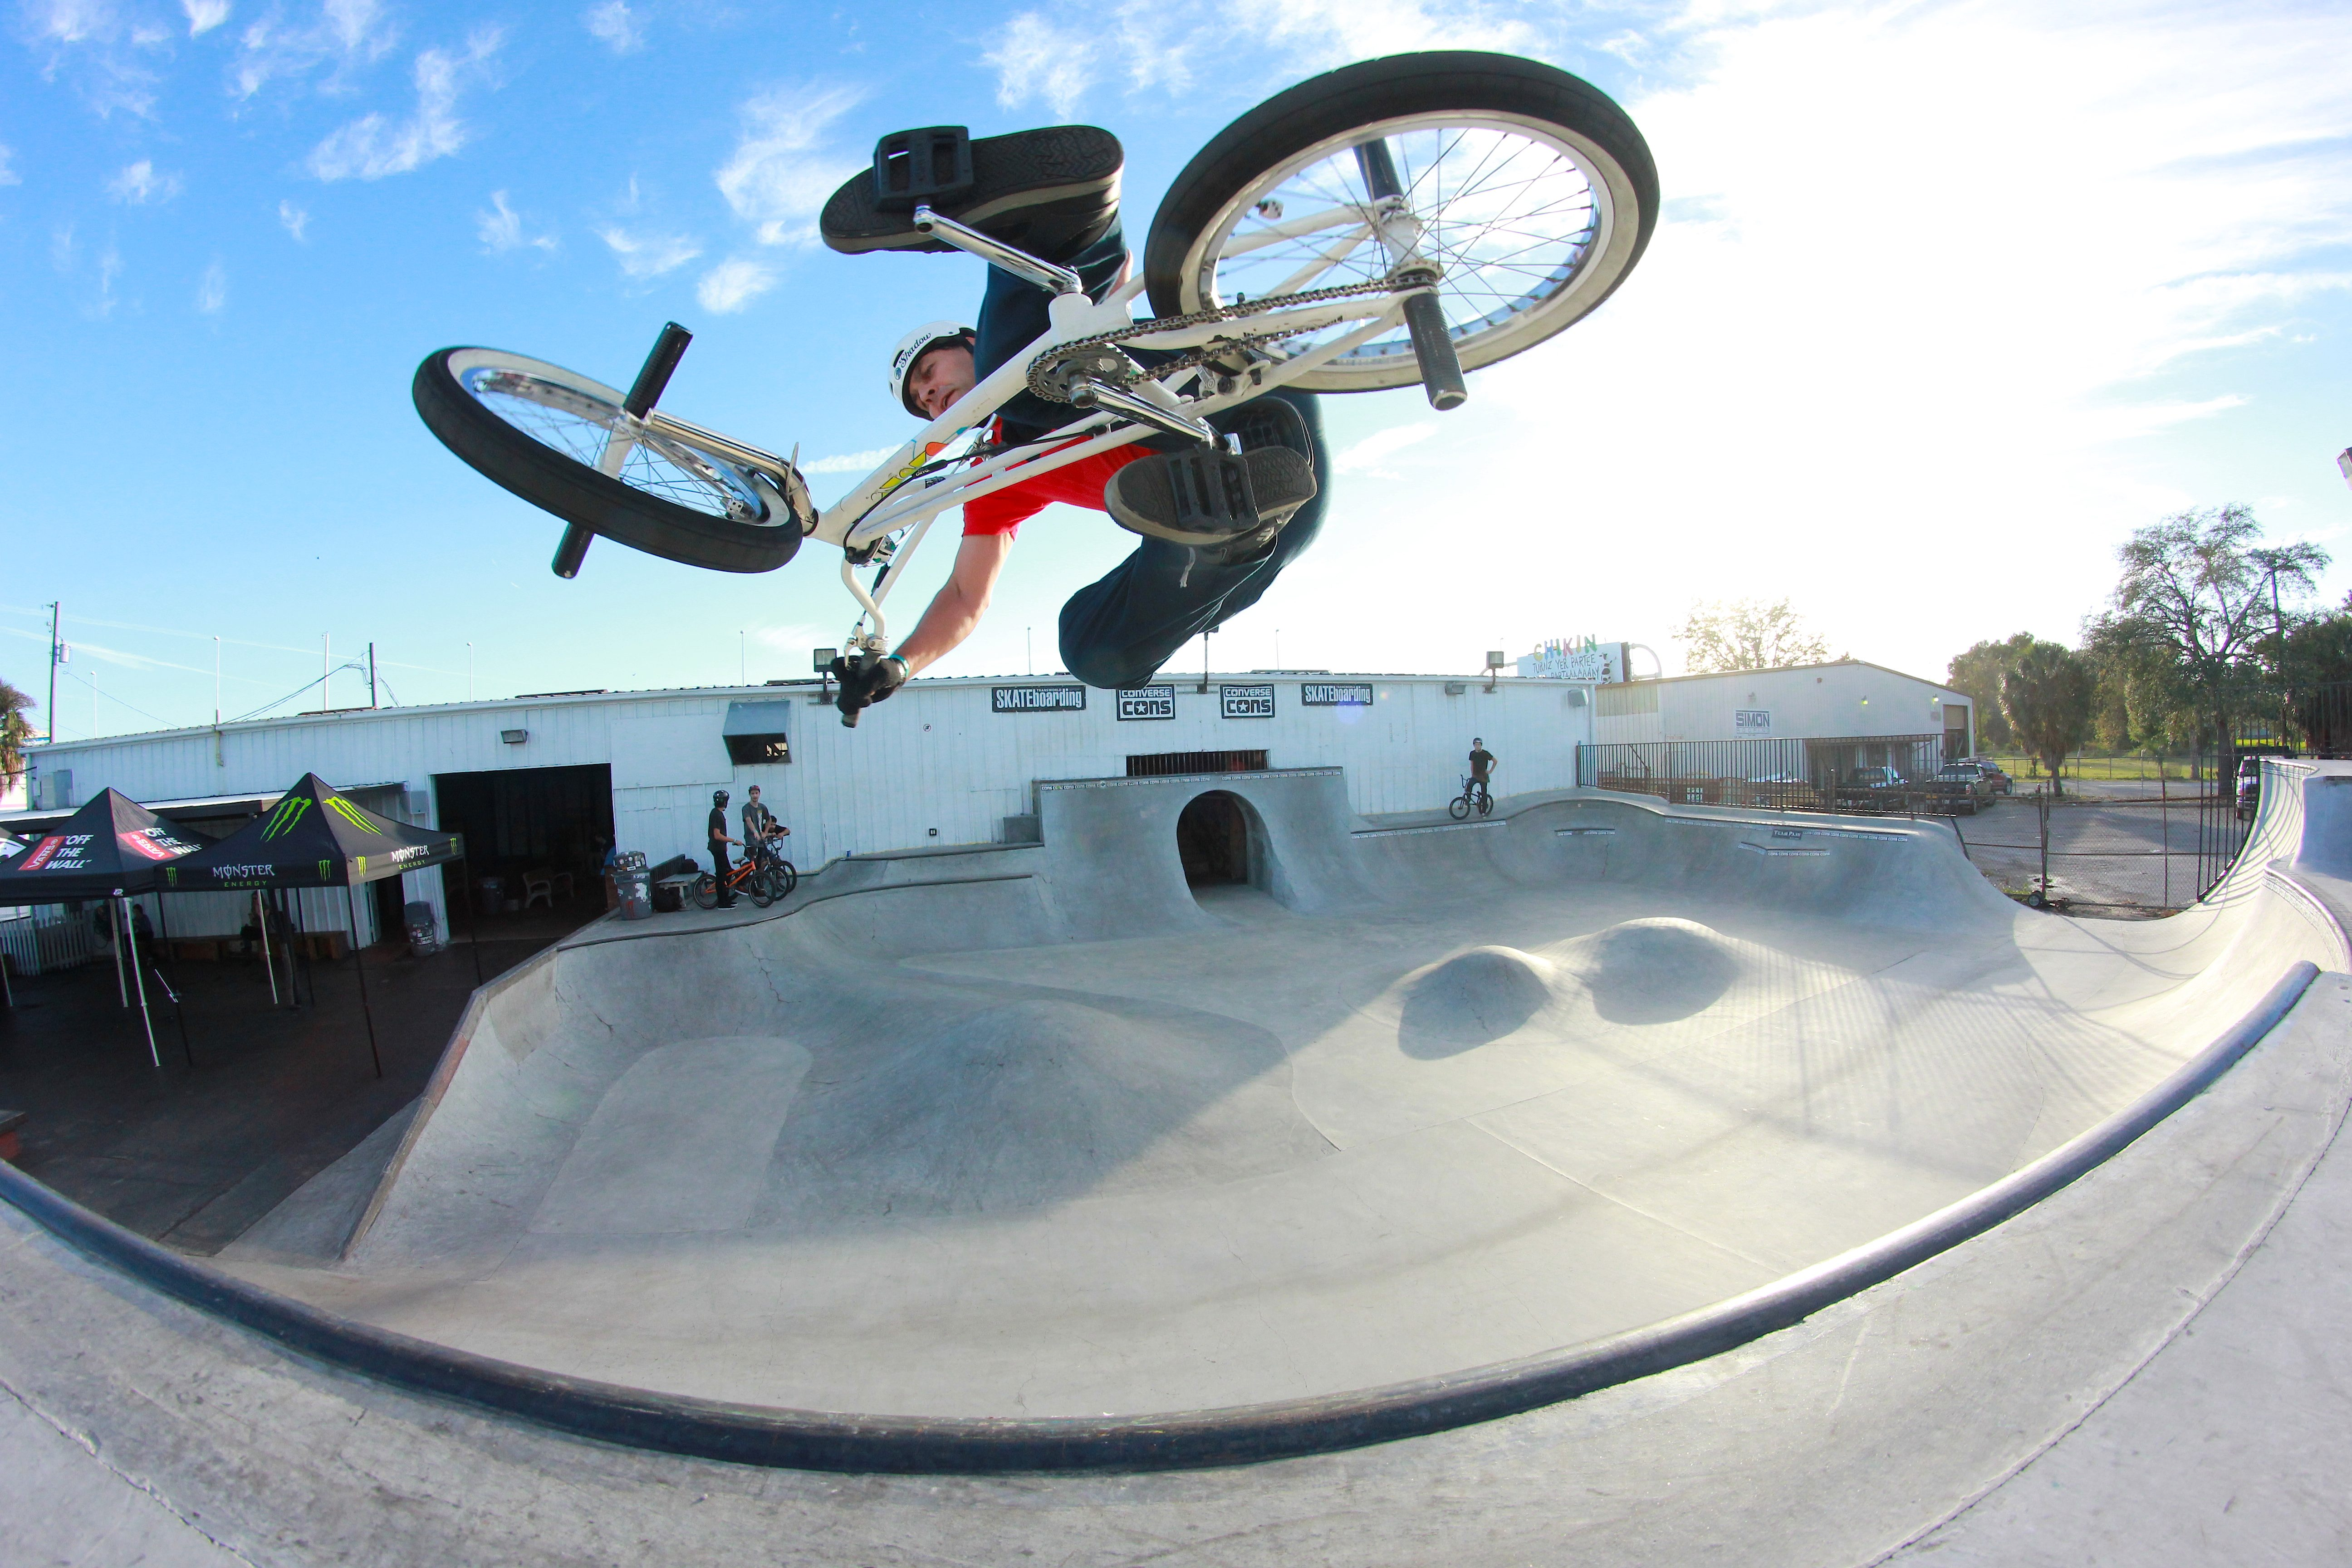 Terry Donley. 30+, well technically, 40+. Tabe on Friday on big cement.